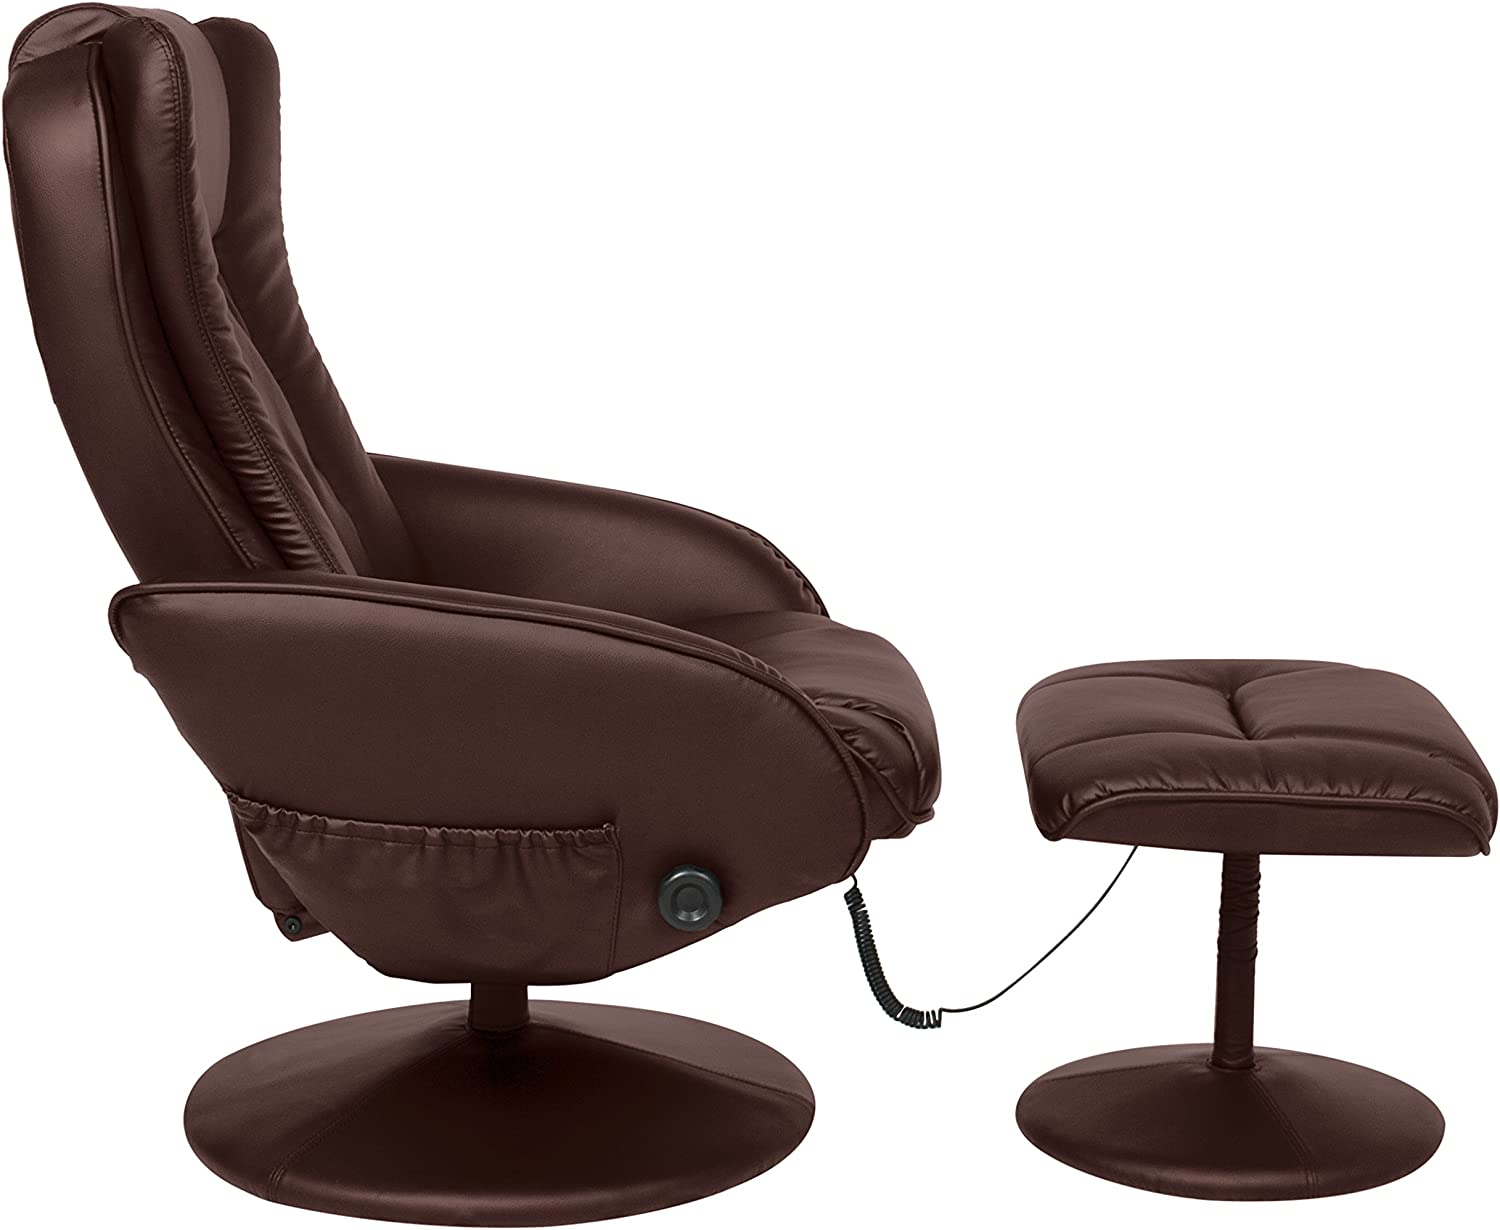 Best Choice Products Recliner Massage Chair from one side